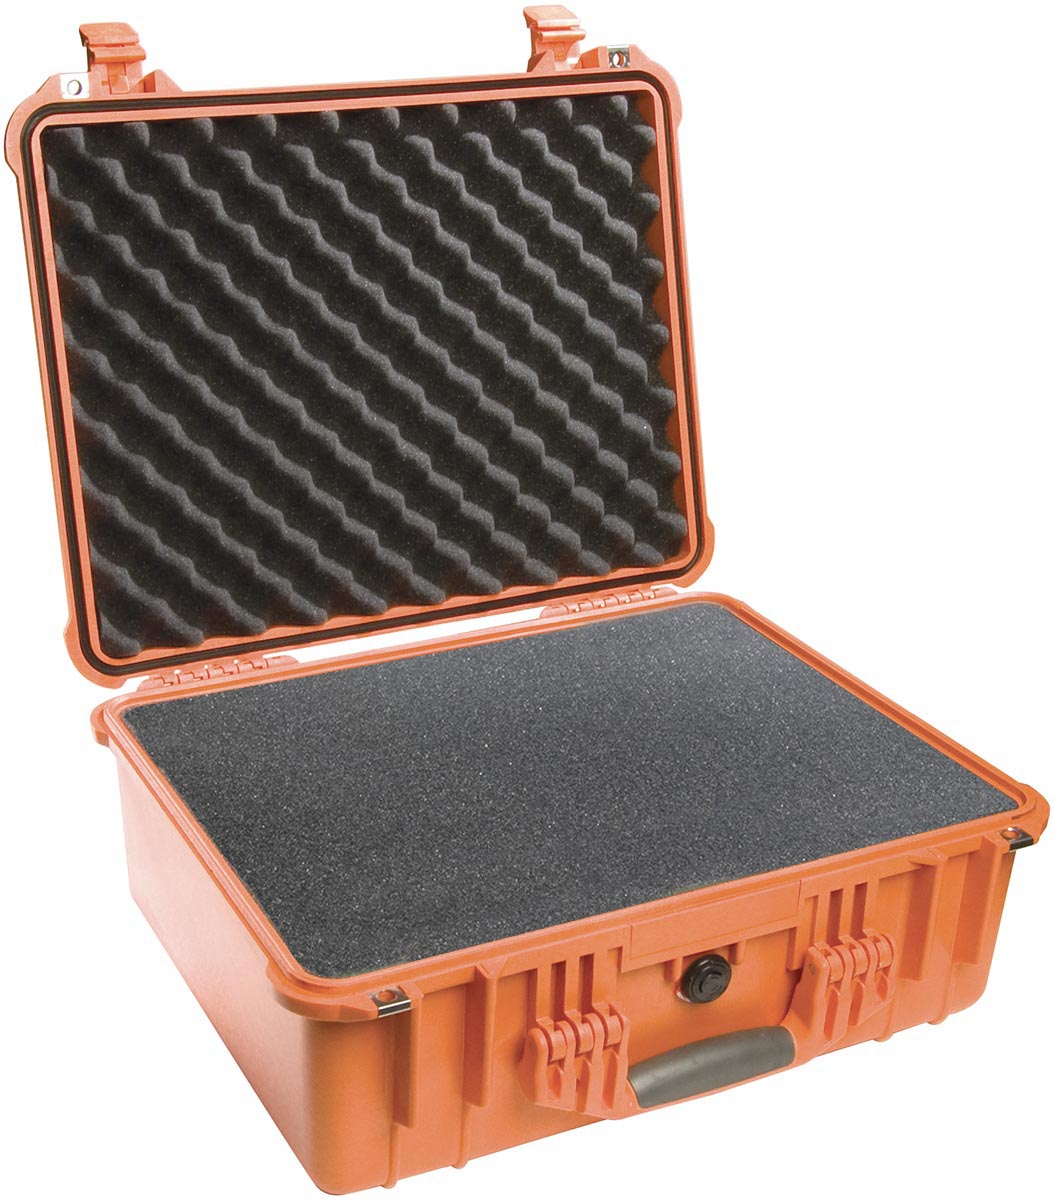 pelican 1550 orange hard waterproof rugged case